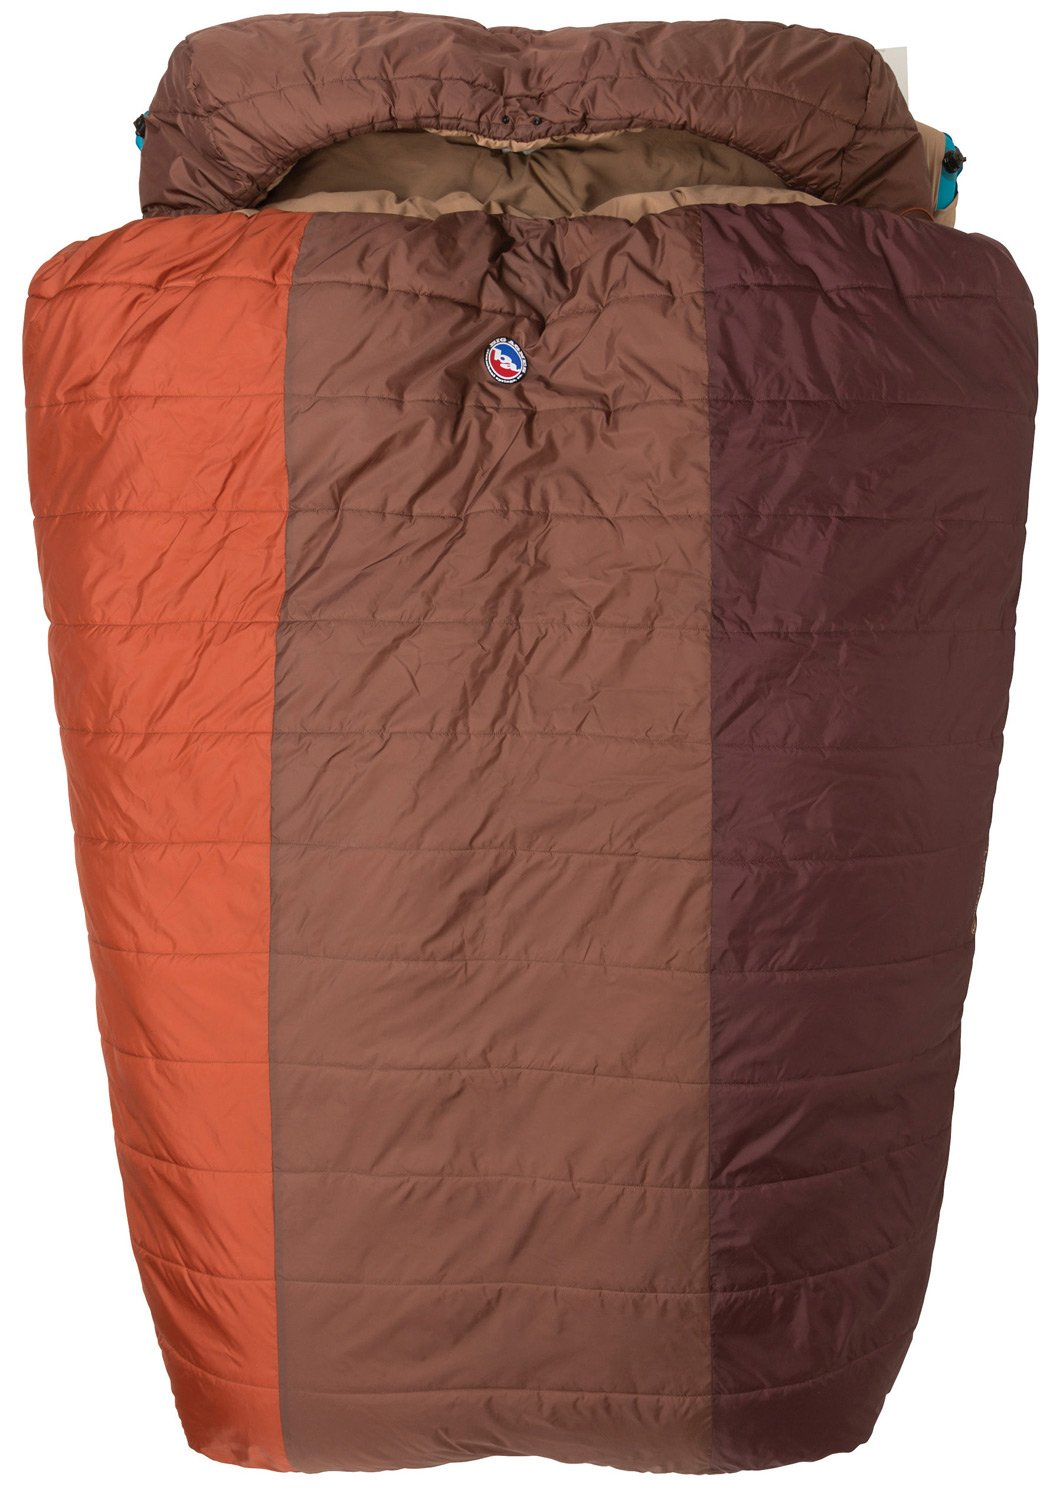 An image of Big Agnes Dream Island 15 Men's 10 Degree Nylon Sleeping Bag